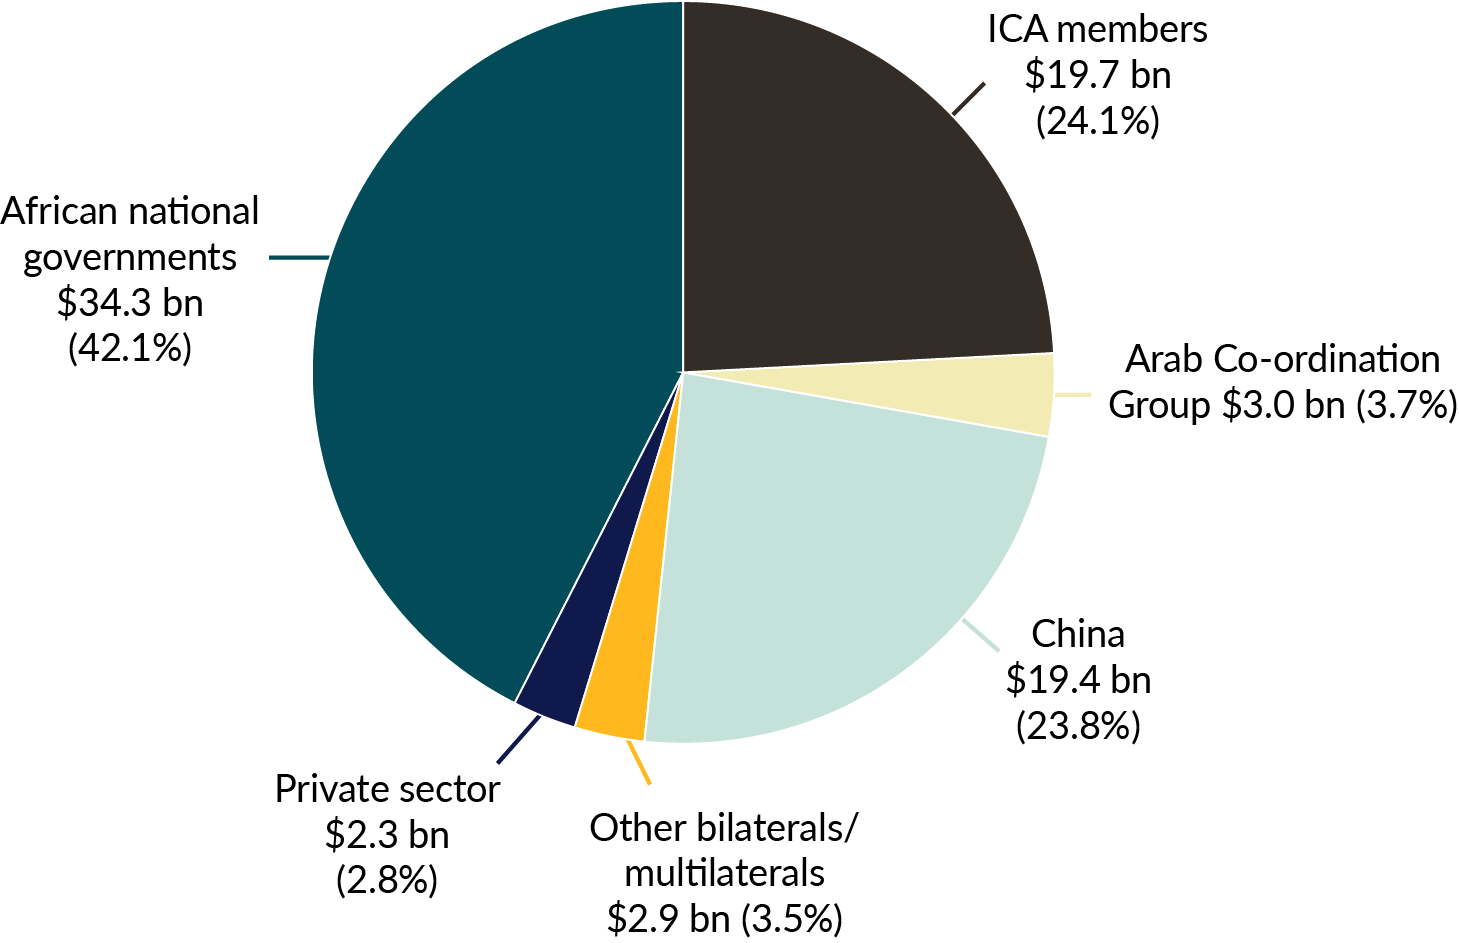 Pie chart showing that African national governments make up 42%, ICA members make up 24%, and China makes up 24% of infrastructuring financing sources, with smaller entities making up the rest